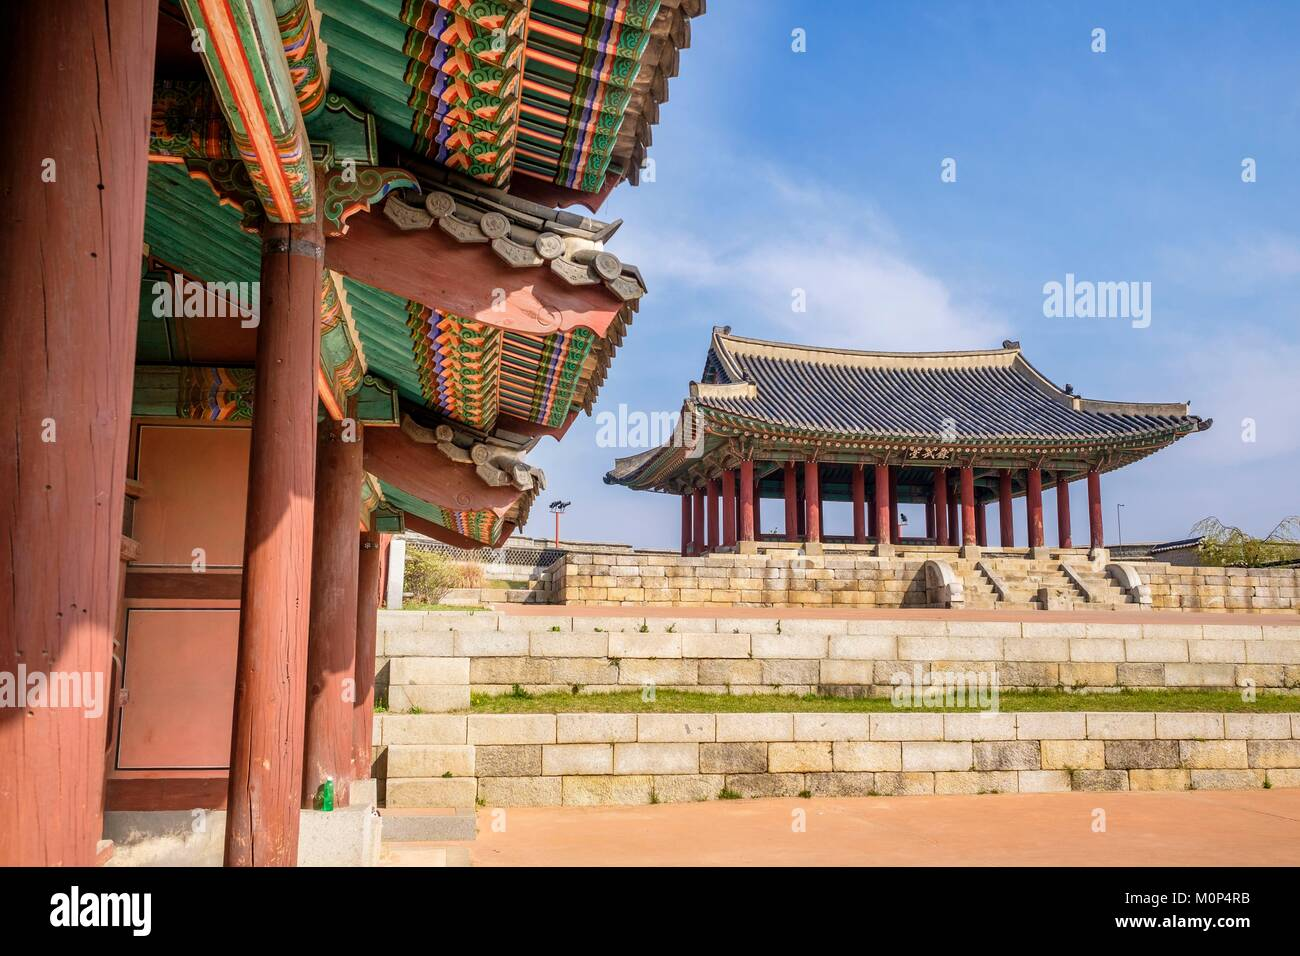 South Korea,Gyeonggi province,Suwon,Hwaseong fortress listed as World Heritage by UNESCO,built between 1794 and - Stock Image